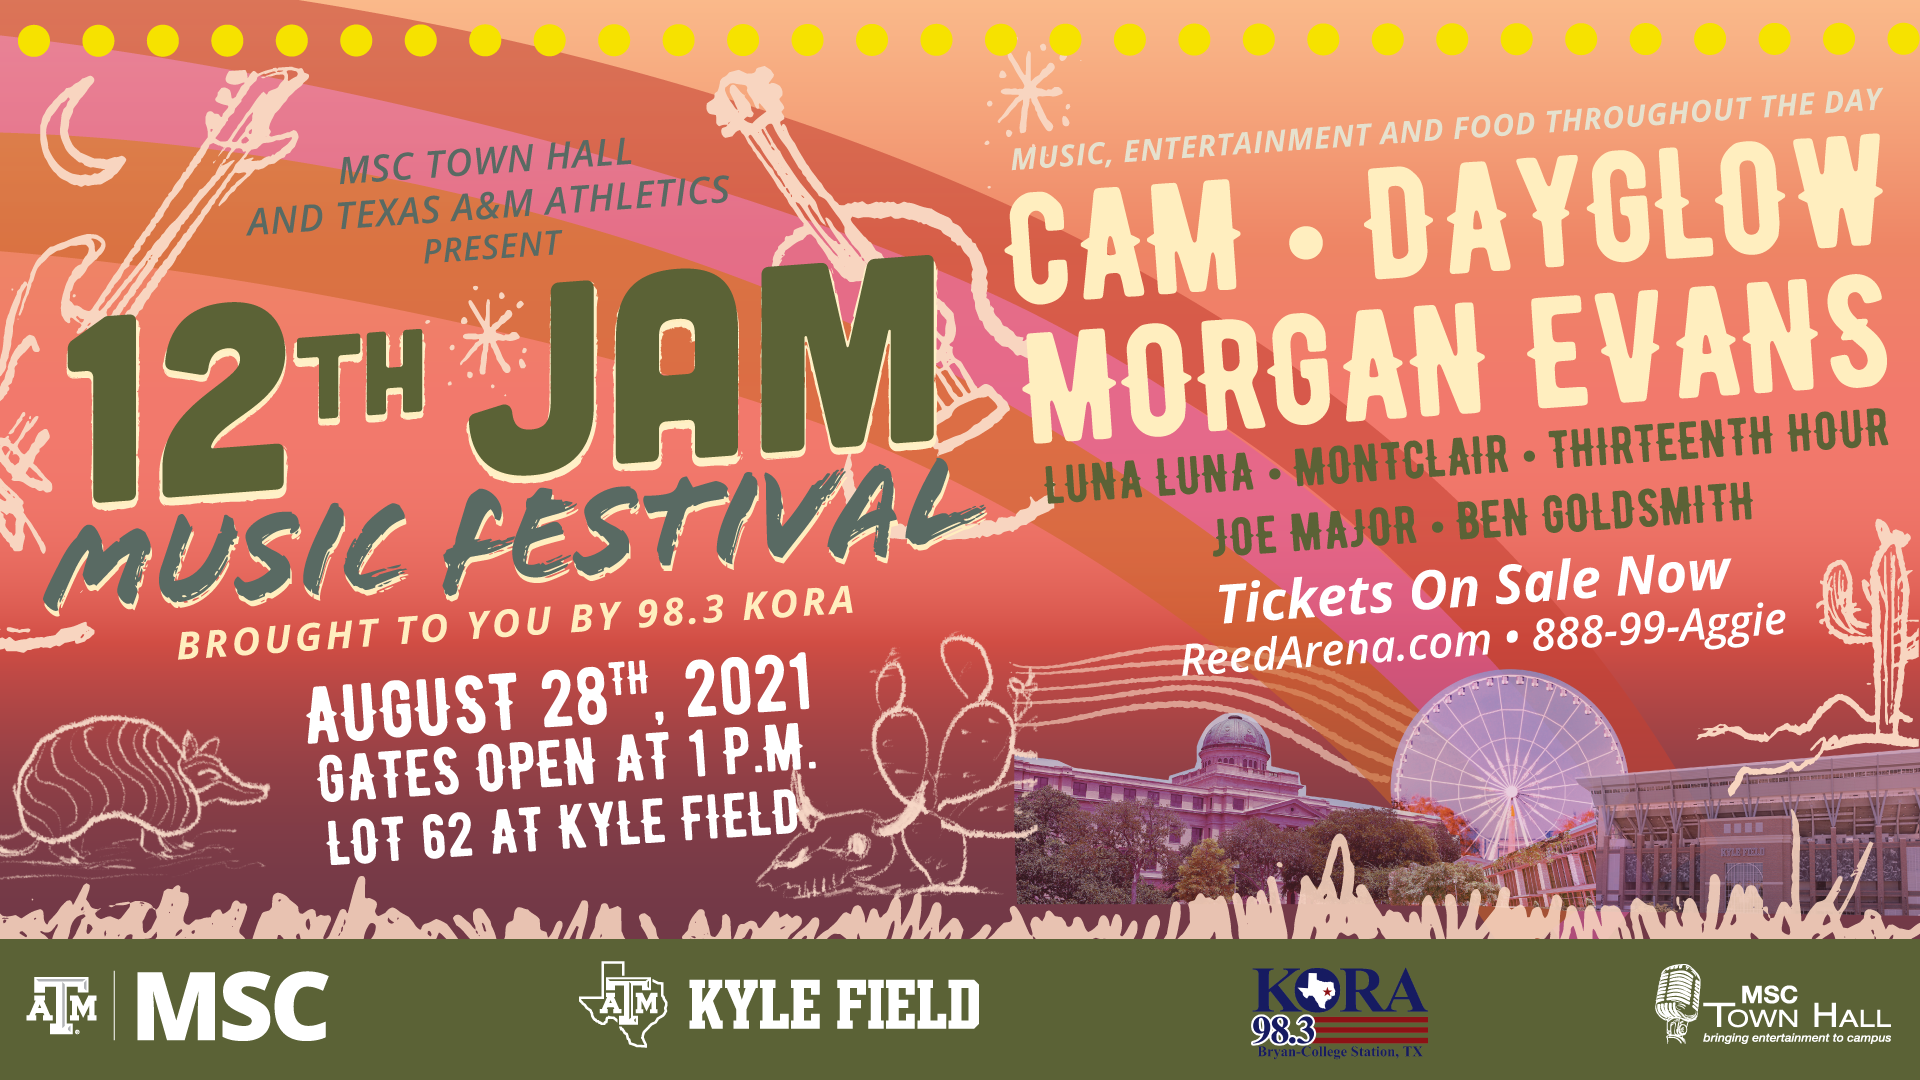 MSC Town Hall and Texas A&M Athletics Present 12th Jam Music Festival Brought to you by 98.3 KORA, Music, Entertainment and Food throughout the day. Bands: Cam, Dayglow, Morgan Evans, Luna Luna, Montclair, Thirteenth Hour, Joe Major and Ben Goldsmith. August 28th, 2021. Gates Open at 1 p.m. at Lot 62 at Kyle Field. Tickets on Sale Now: ReedArena.com, or call 888-99-Aggie